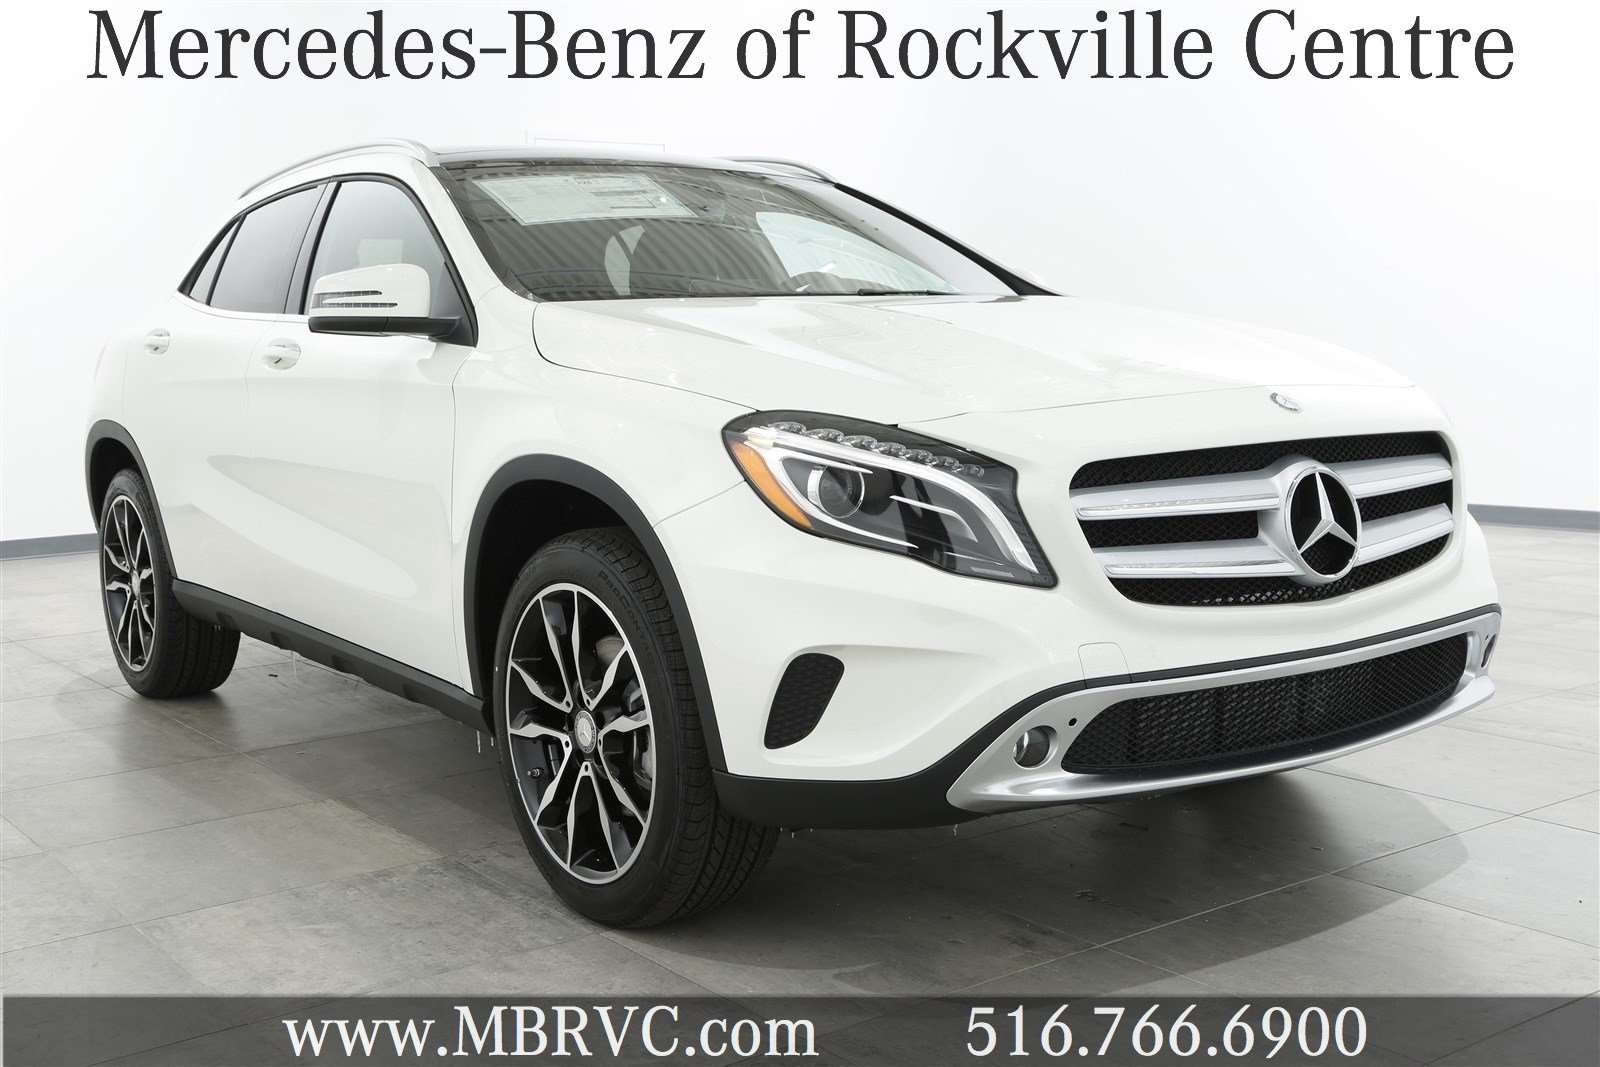 new 2017 mercedes benz gla gla250 suv in rockville centre hj341138 mercedes benz of rockville. Black Bedroom Furniture Sets. Home Design Ideas